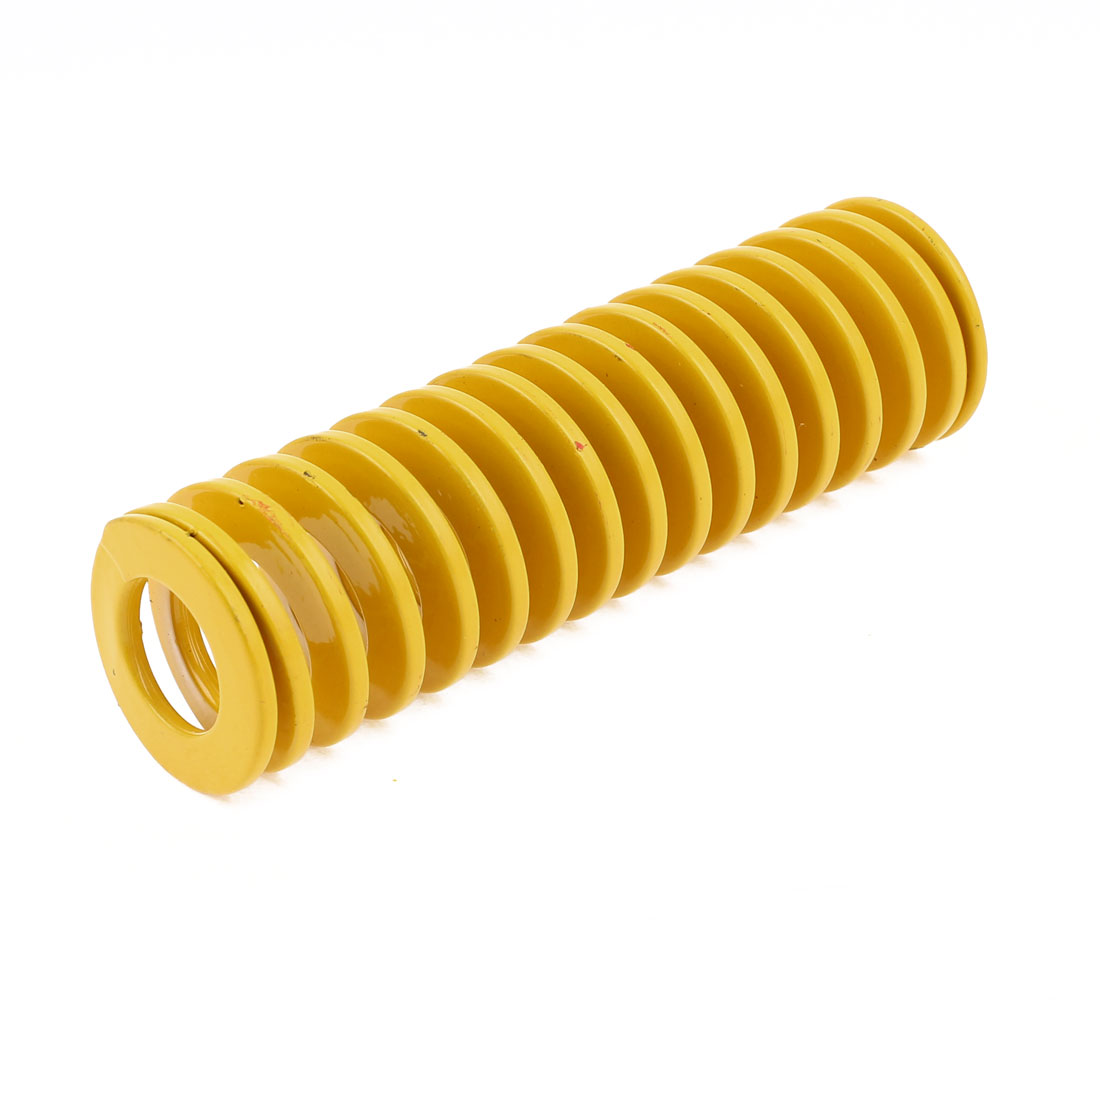 Yellow Alloy Steel Light Load Press Flat Coil Compression Die Spring 30mm x 15mm x 100mm